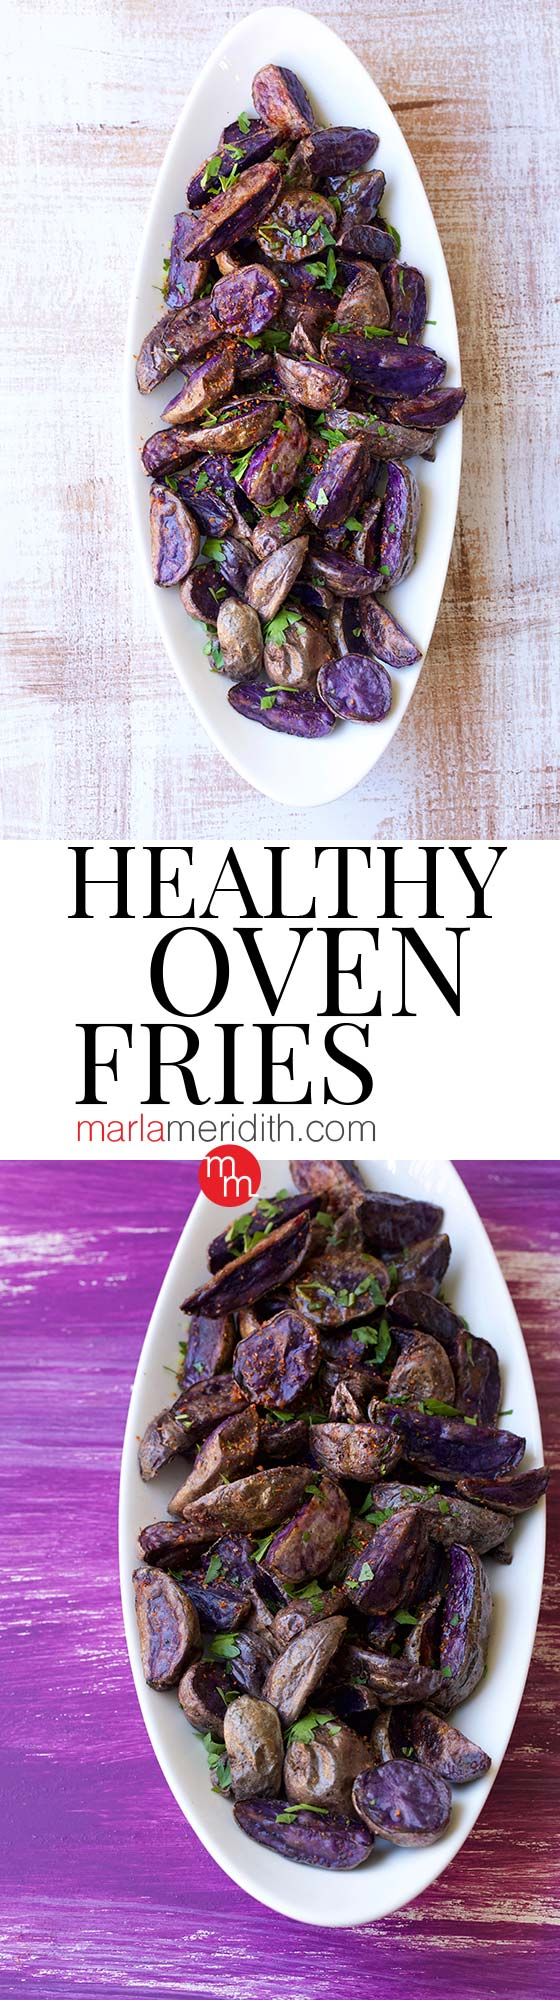 Healthy Oven Fries recipe, guilt free French Fries! MarlaMeridith.com